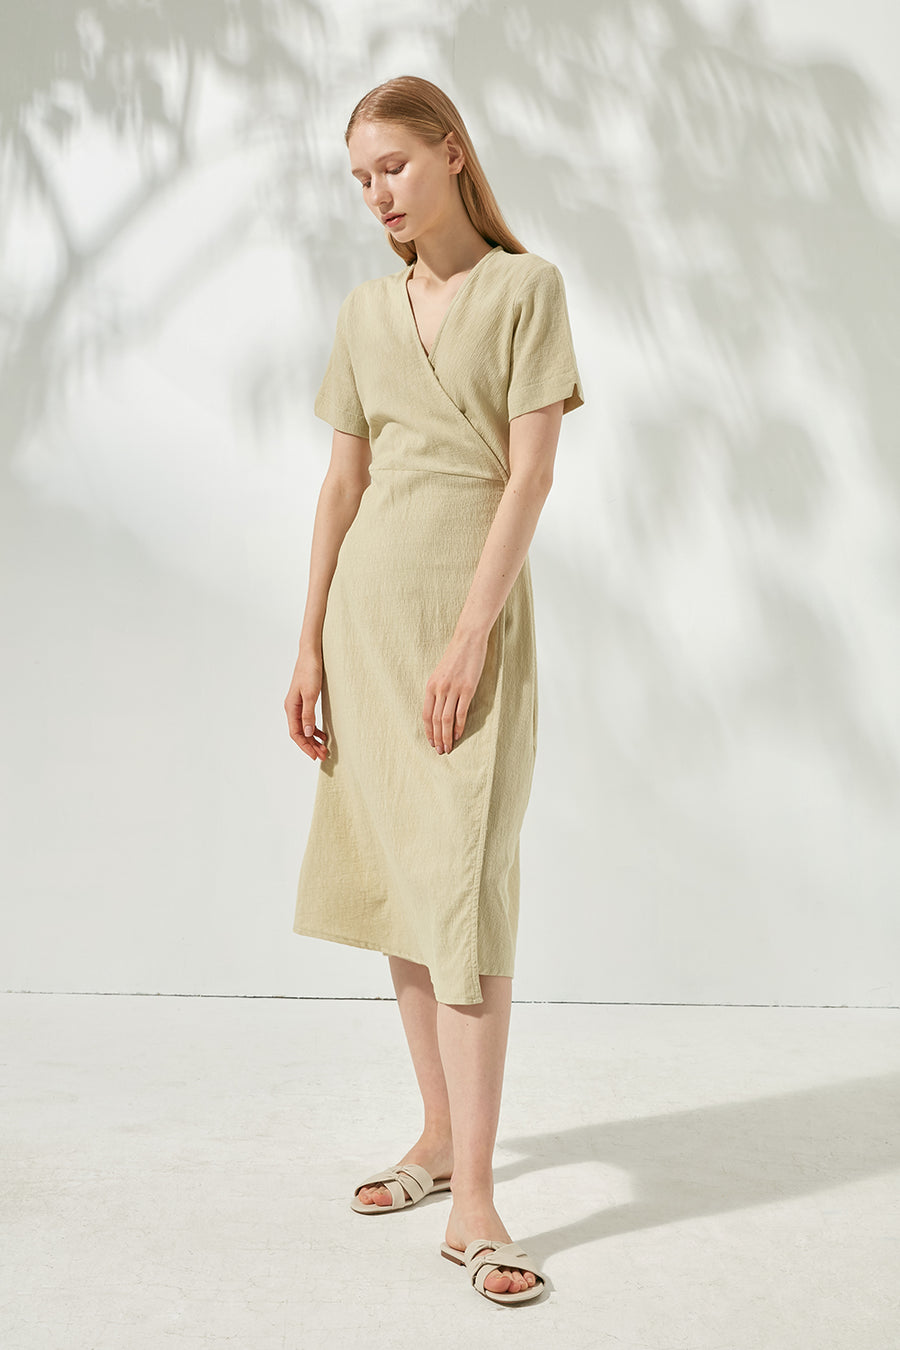 Cotton wrap dress - Zelle Studio